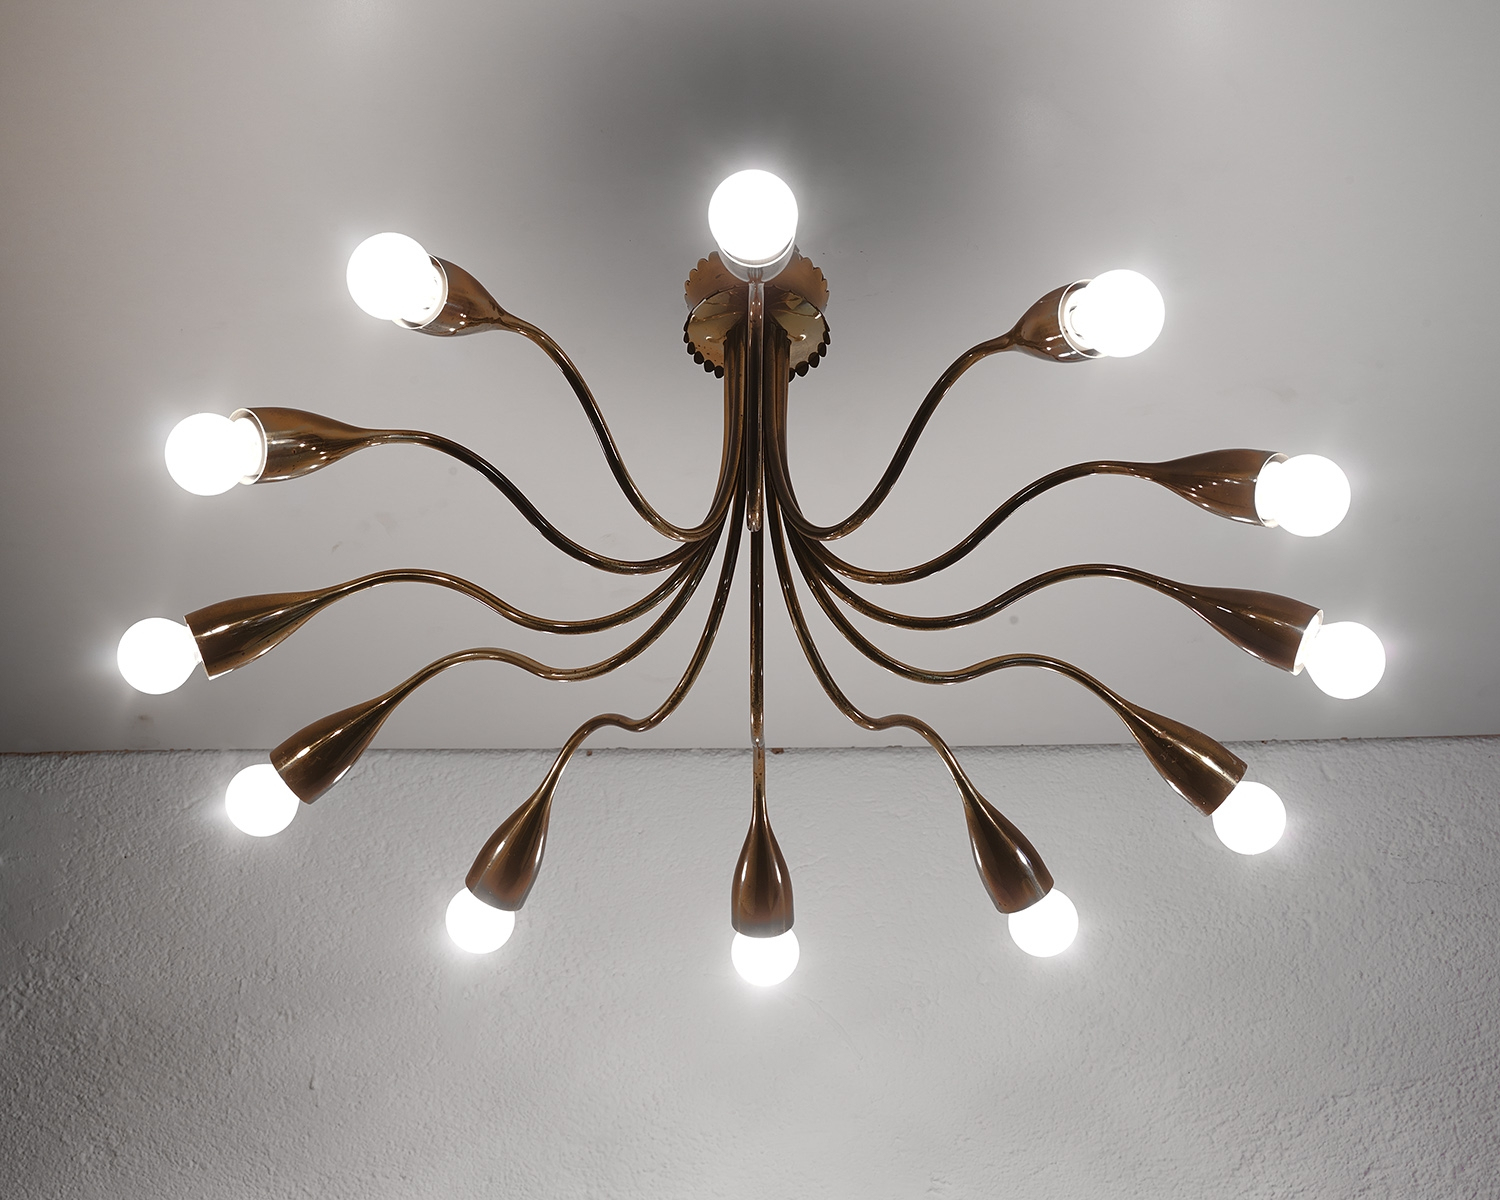 brass-spider-ceiling-lamp-1950-image-03